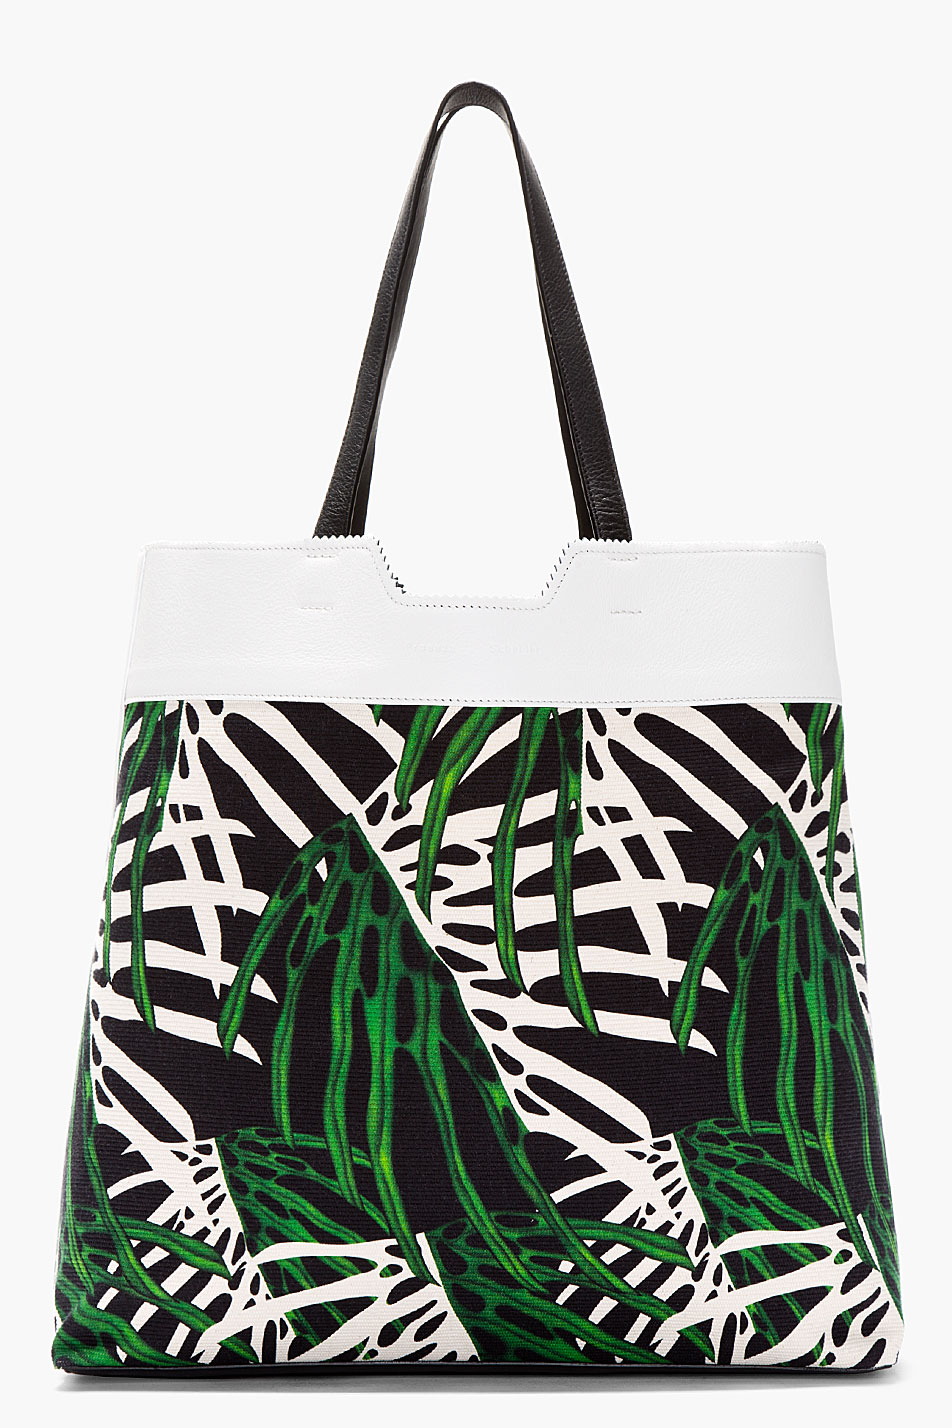 Proenza schouler white and green leaf printed paper bag tote